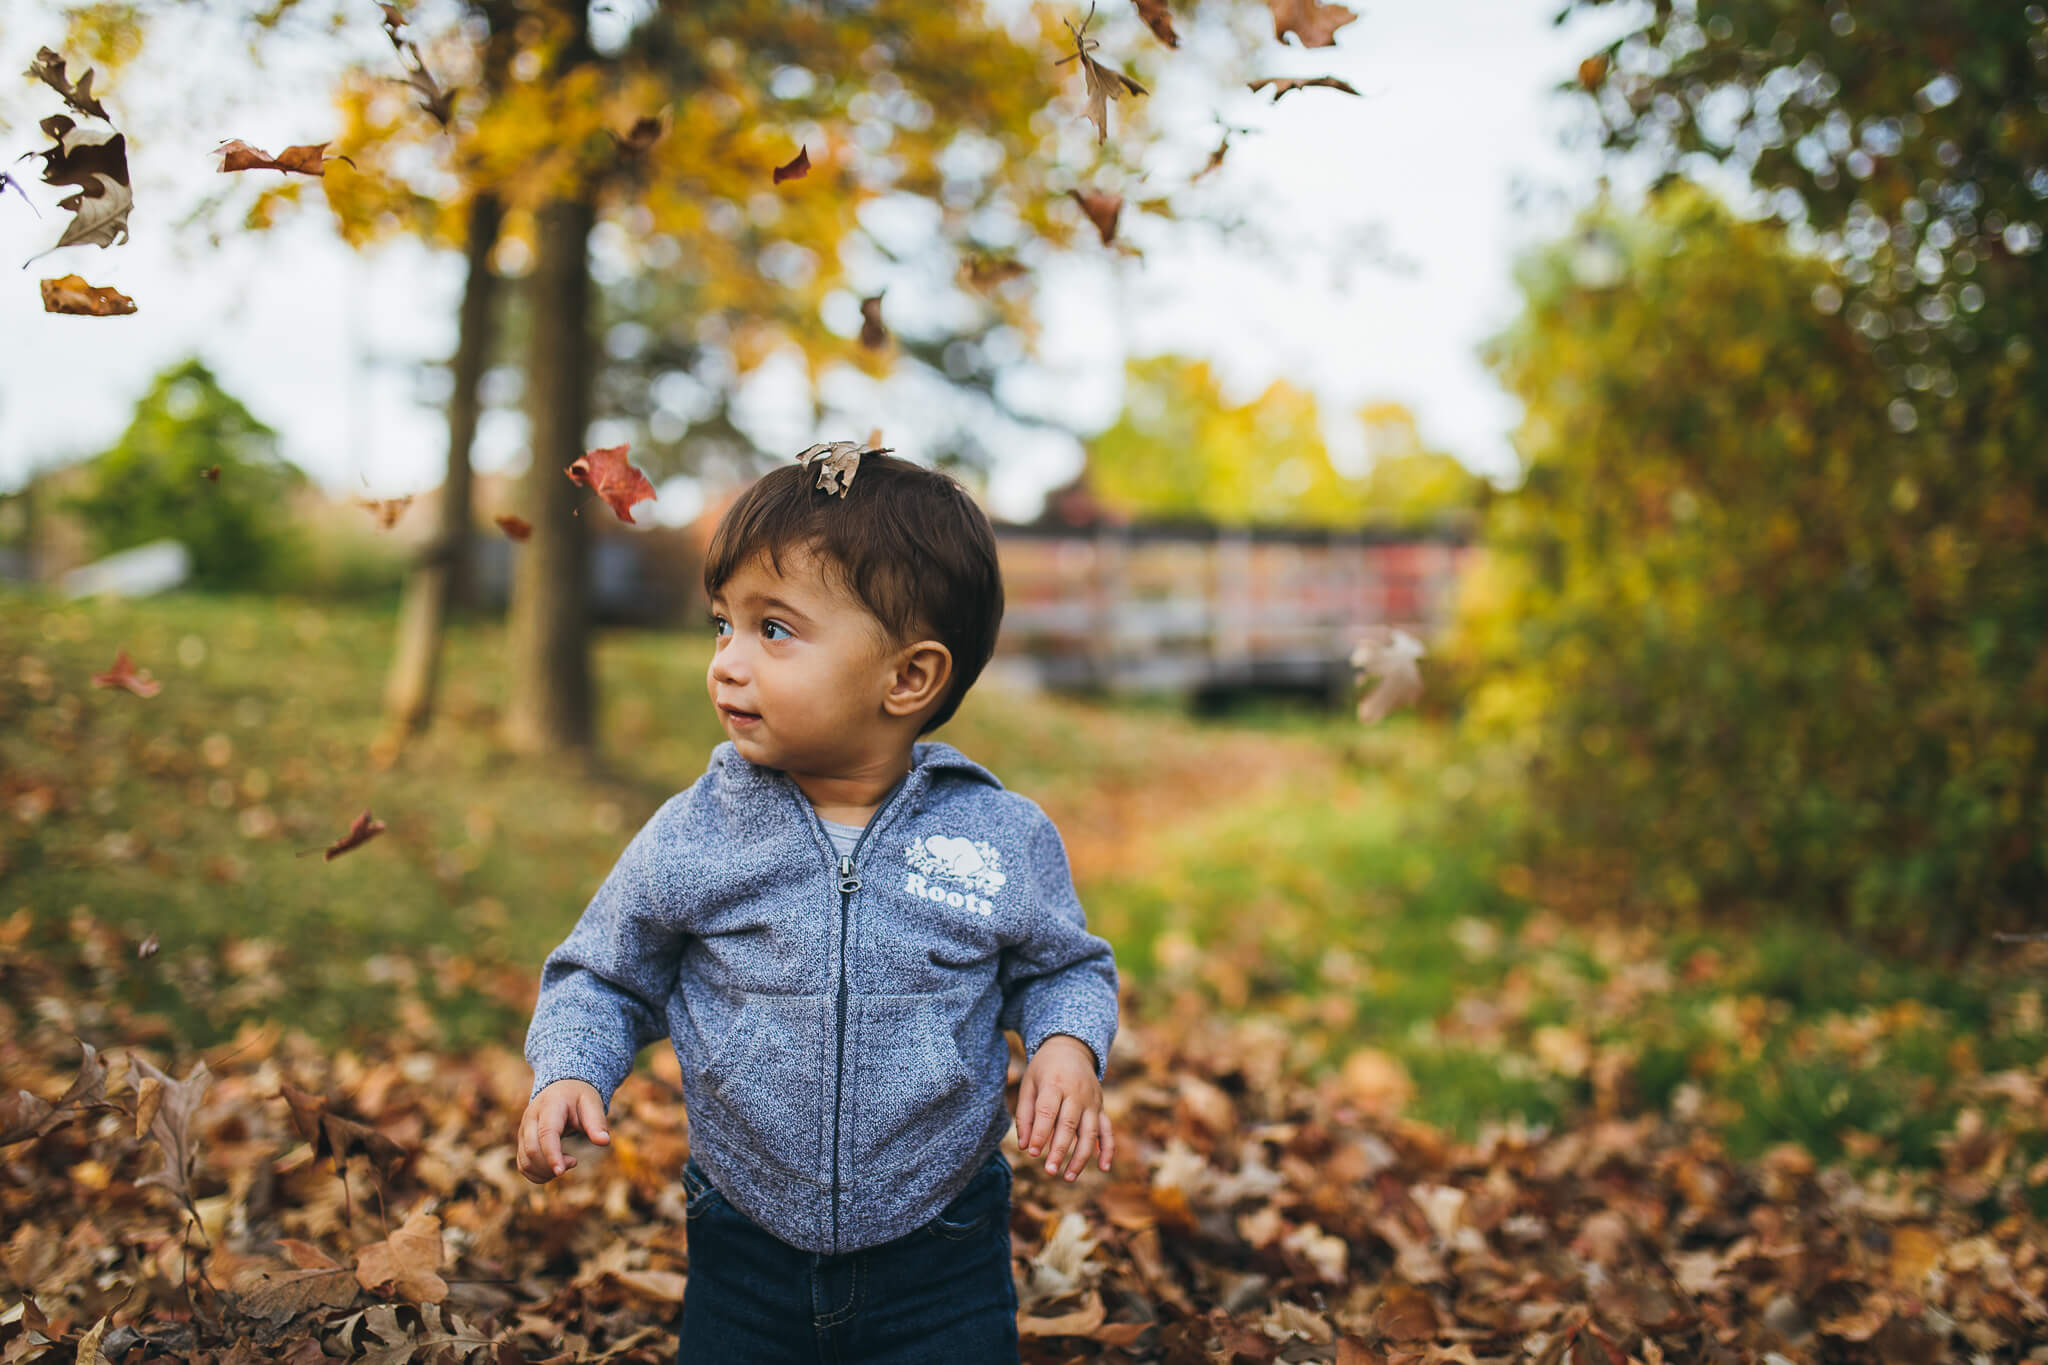 Toddler standing in leaves with colourful trees in the back during the autumn season.